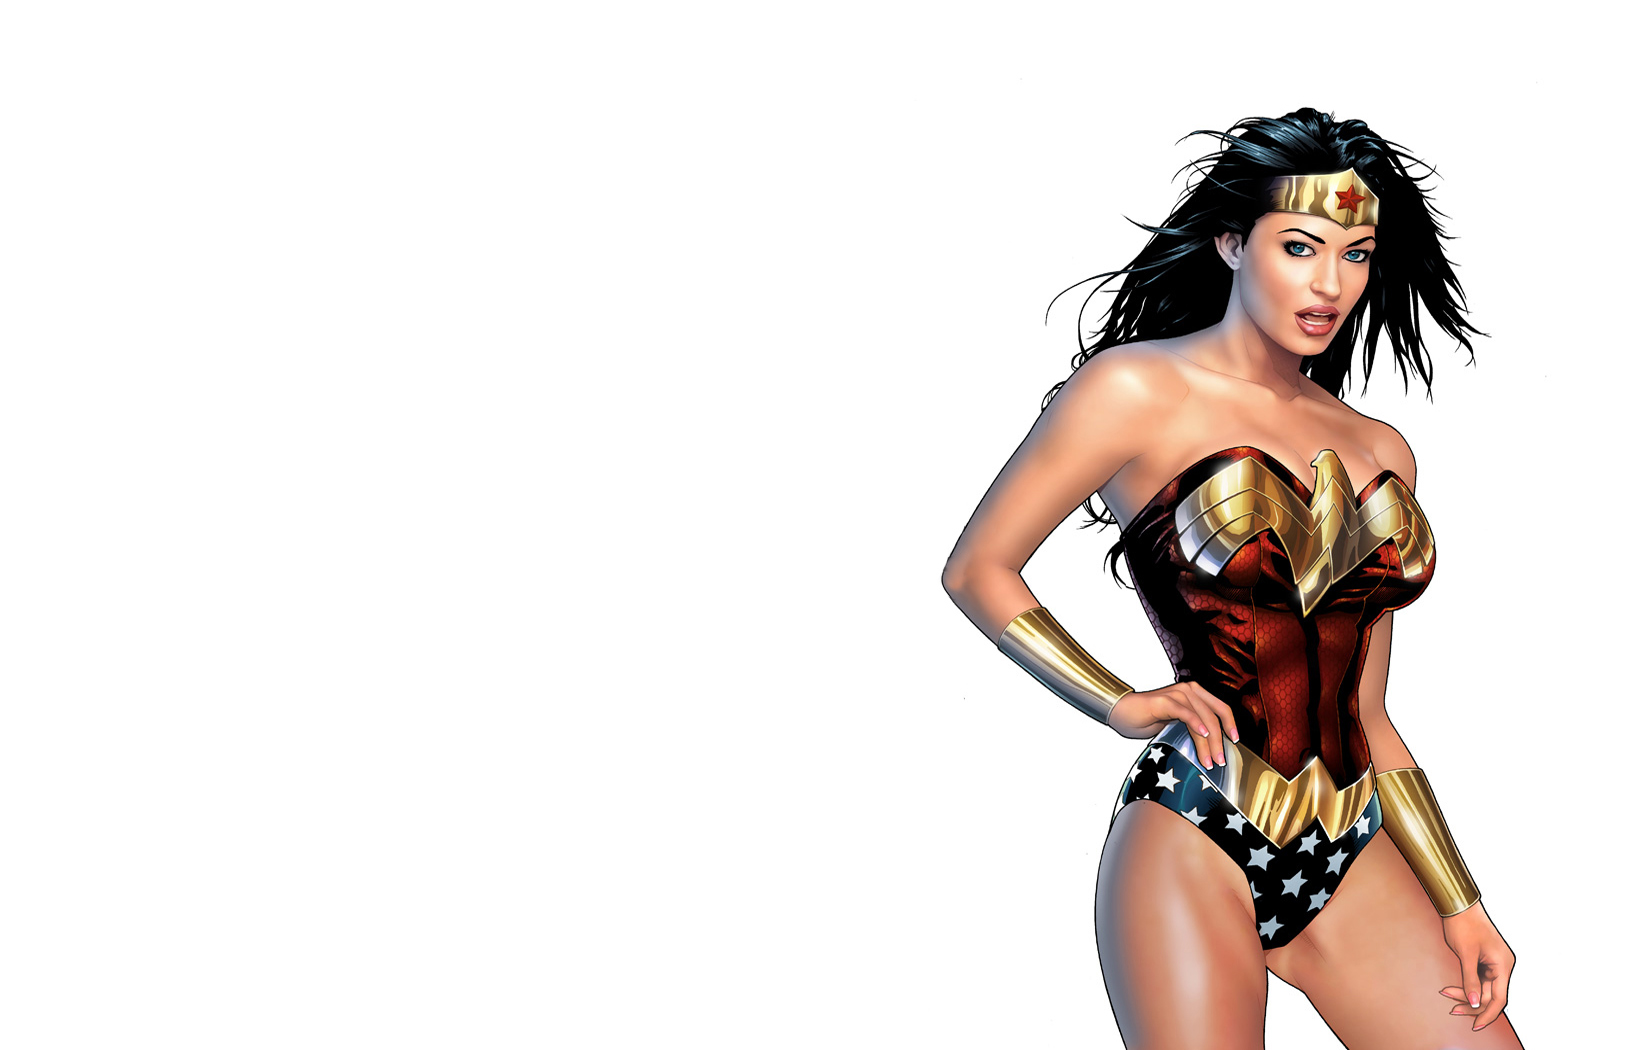 332 Wonder Woman Hd Wallpapers  Backgrounds - Wallpaper Abyss - Page 8-5086